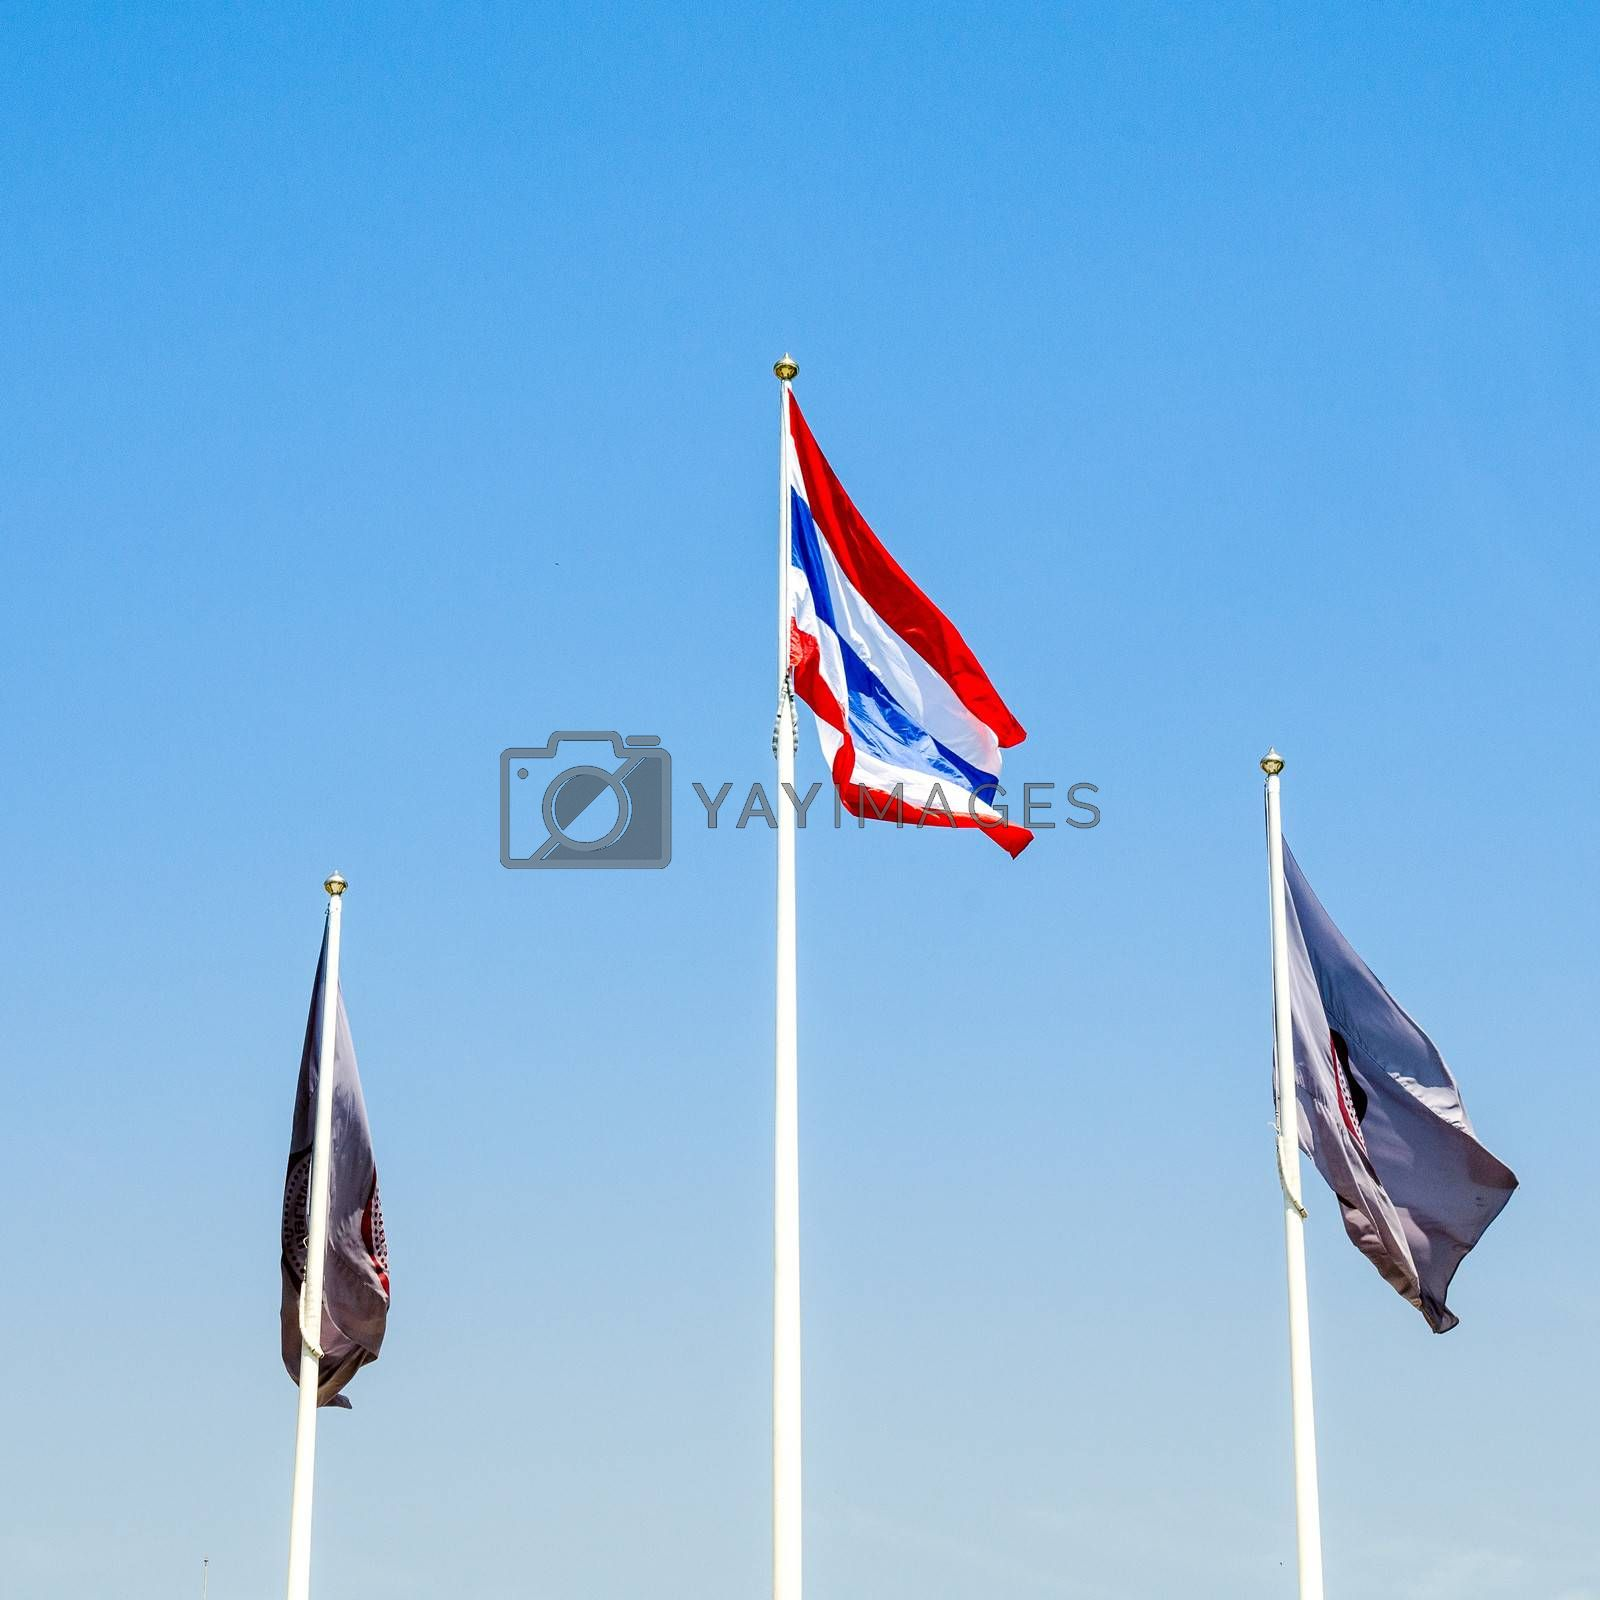 Thai flag with two another flag and bule sky background